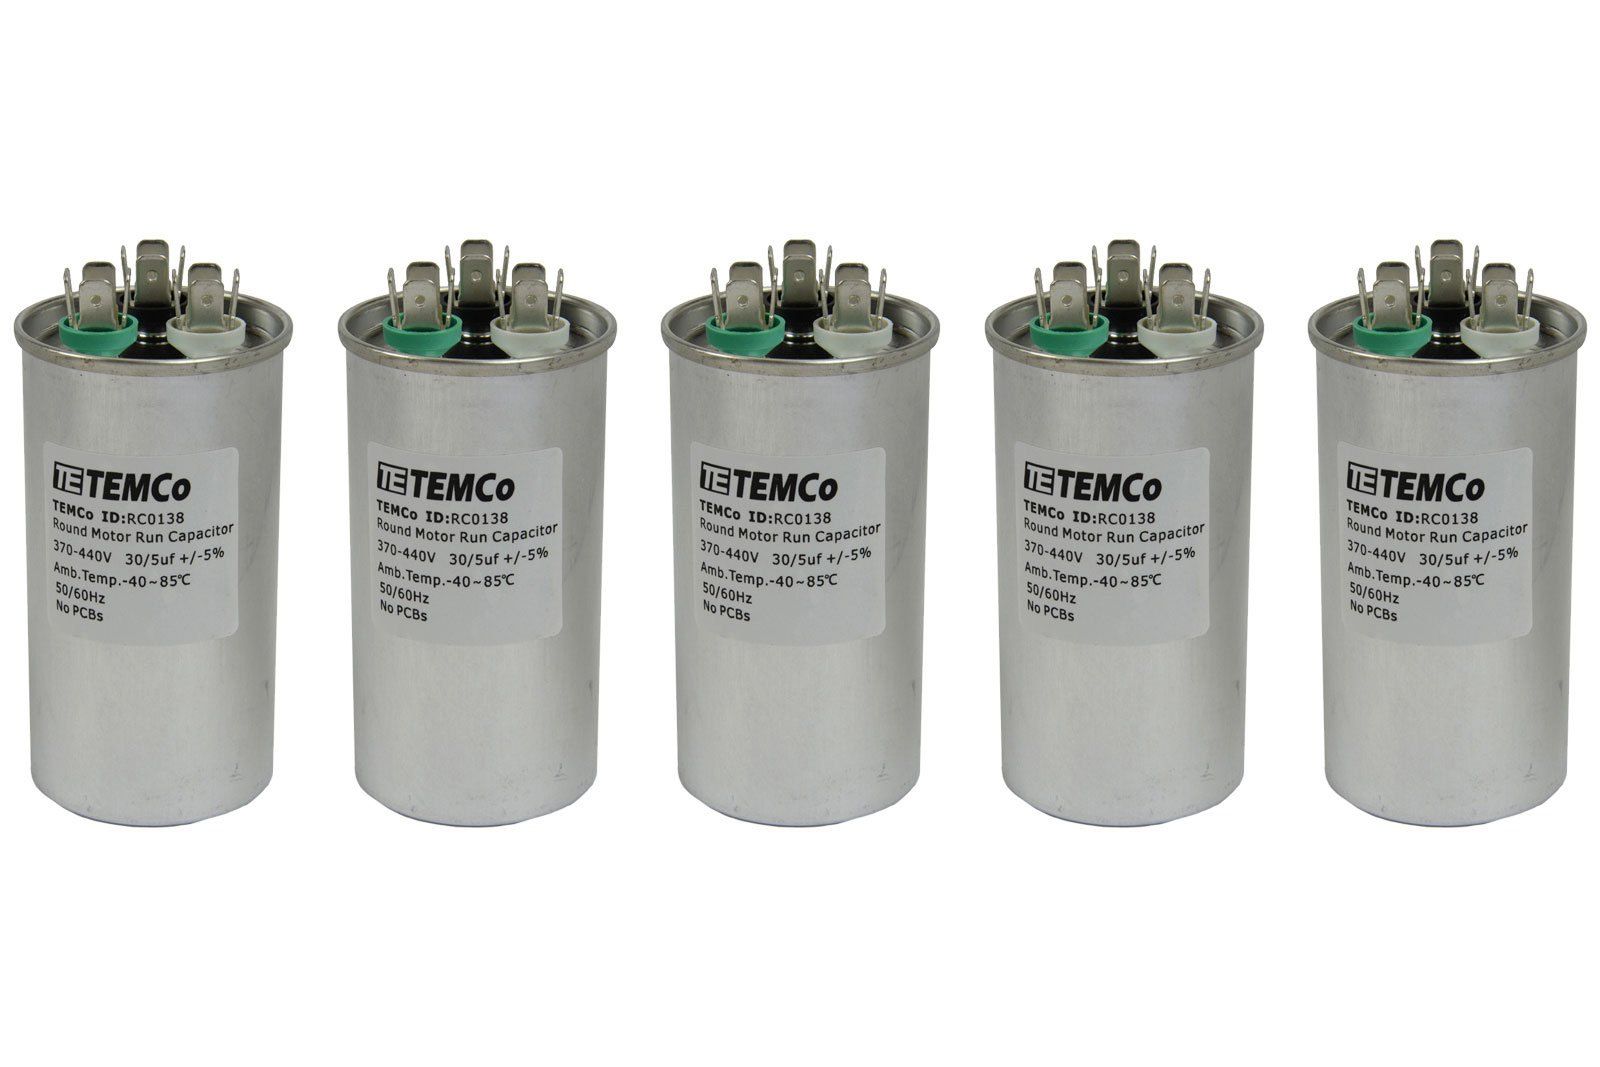 TEMCo 5 LOT Dual Run Capacitor RC0139-30/5 mfd 370 V 440 V VAC volt 30+5 uf AC Electric Motor HVAC